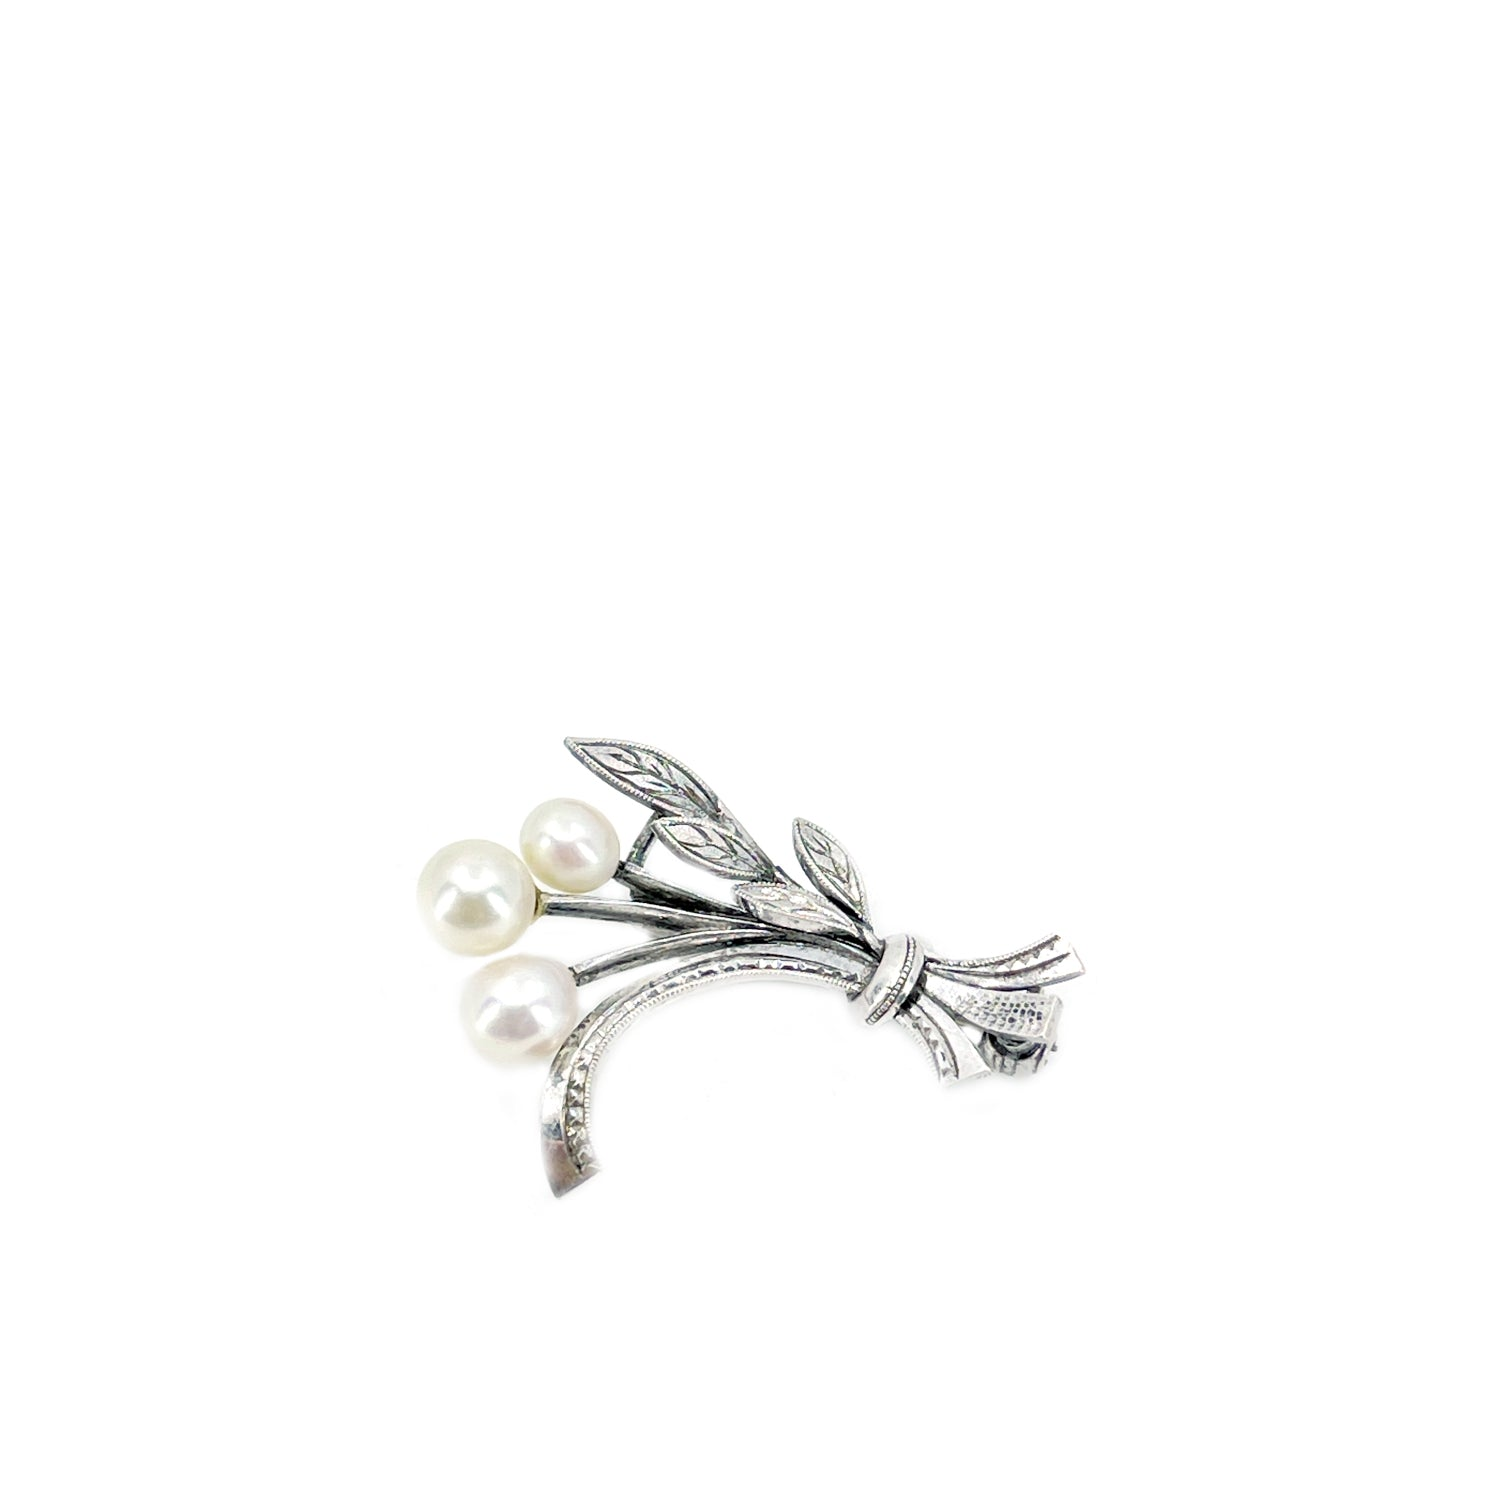 Engraved Spray Branch Japanese Akoya Cultured Saltwater Pearl Brooch- Sterling Silver